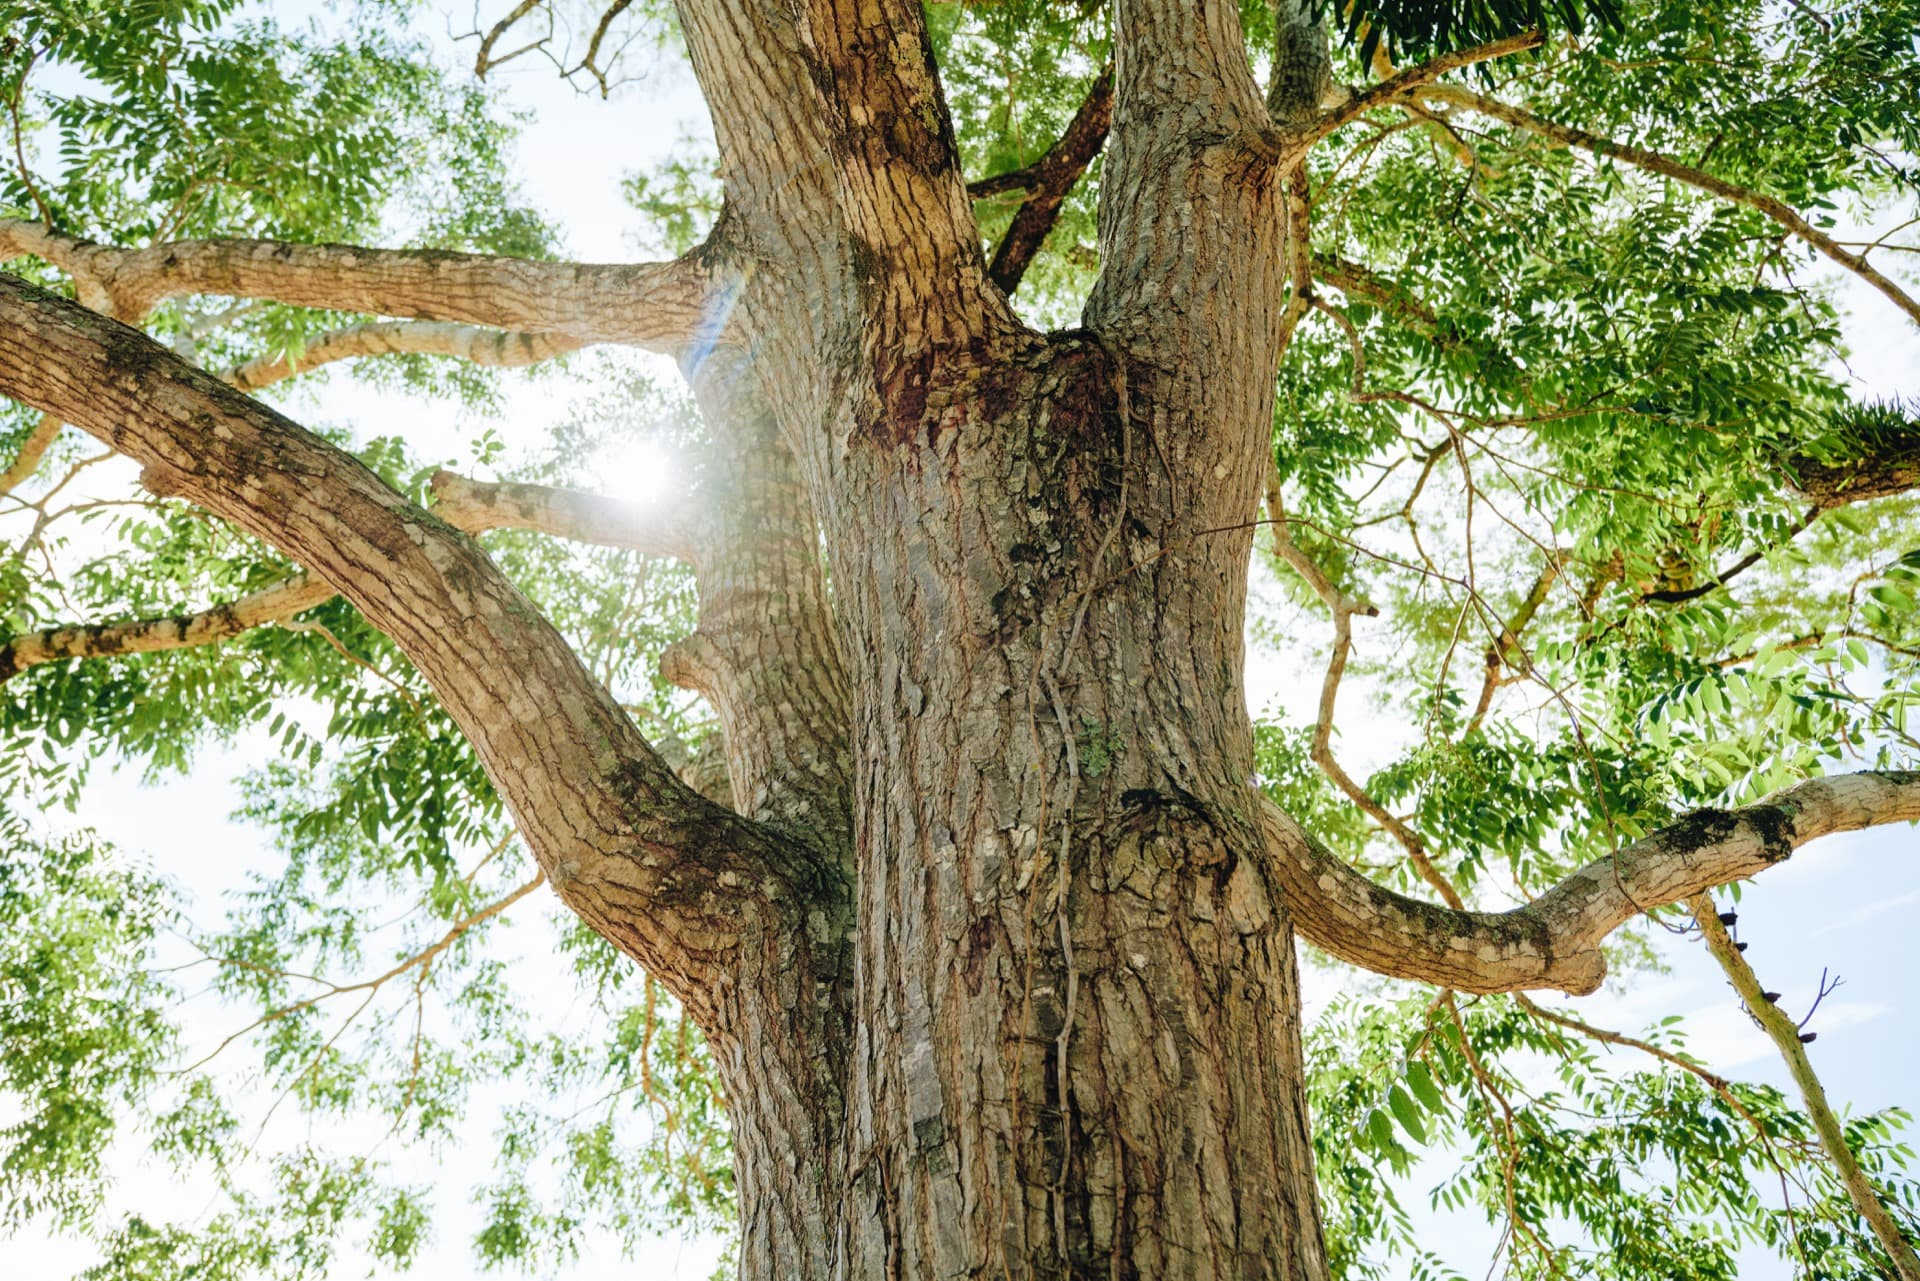 Compensates CO2 by planting trees